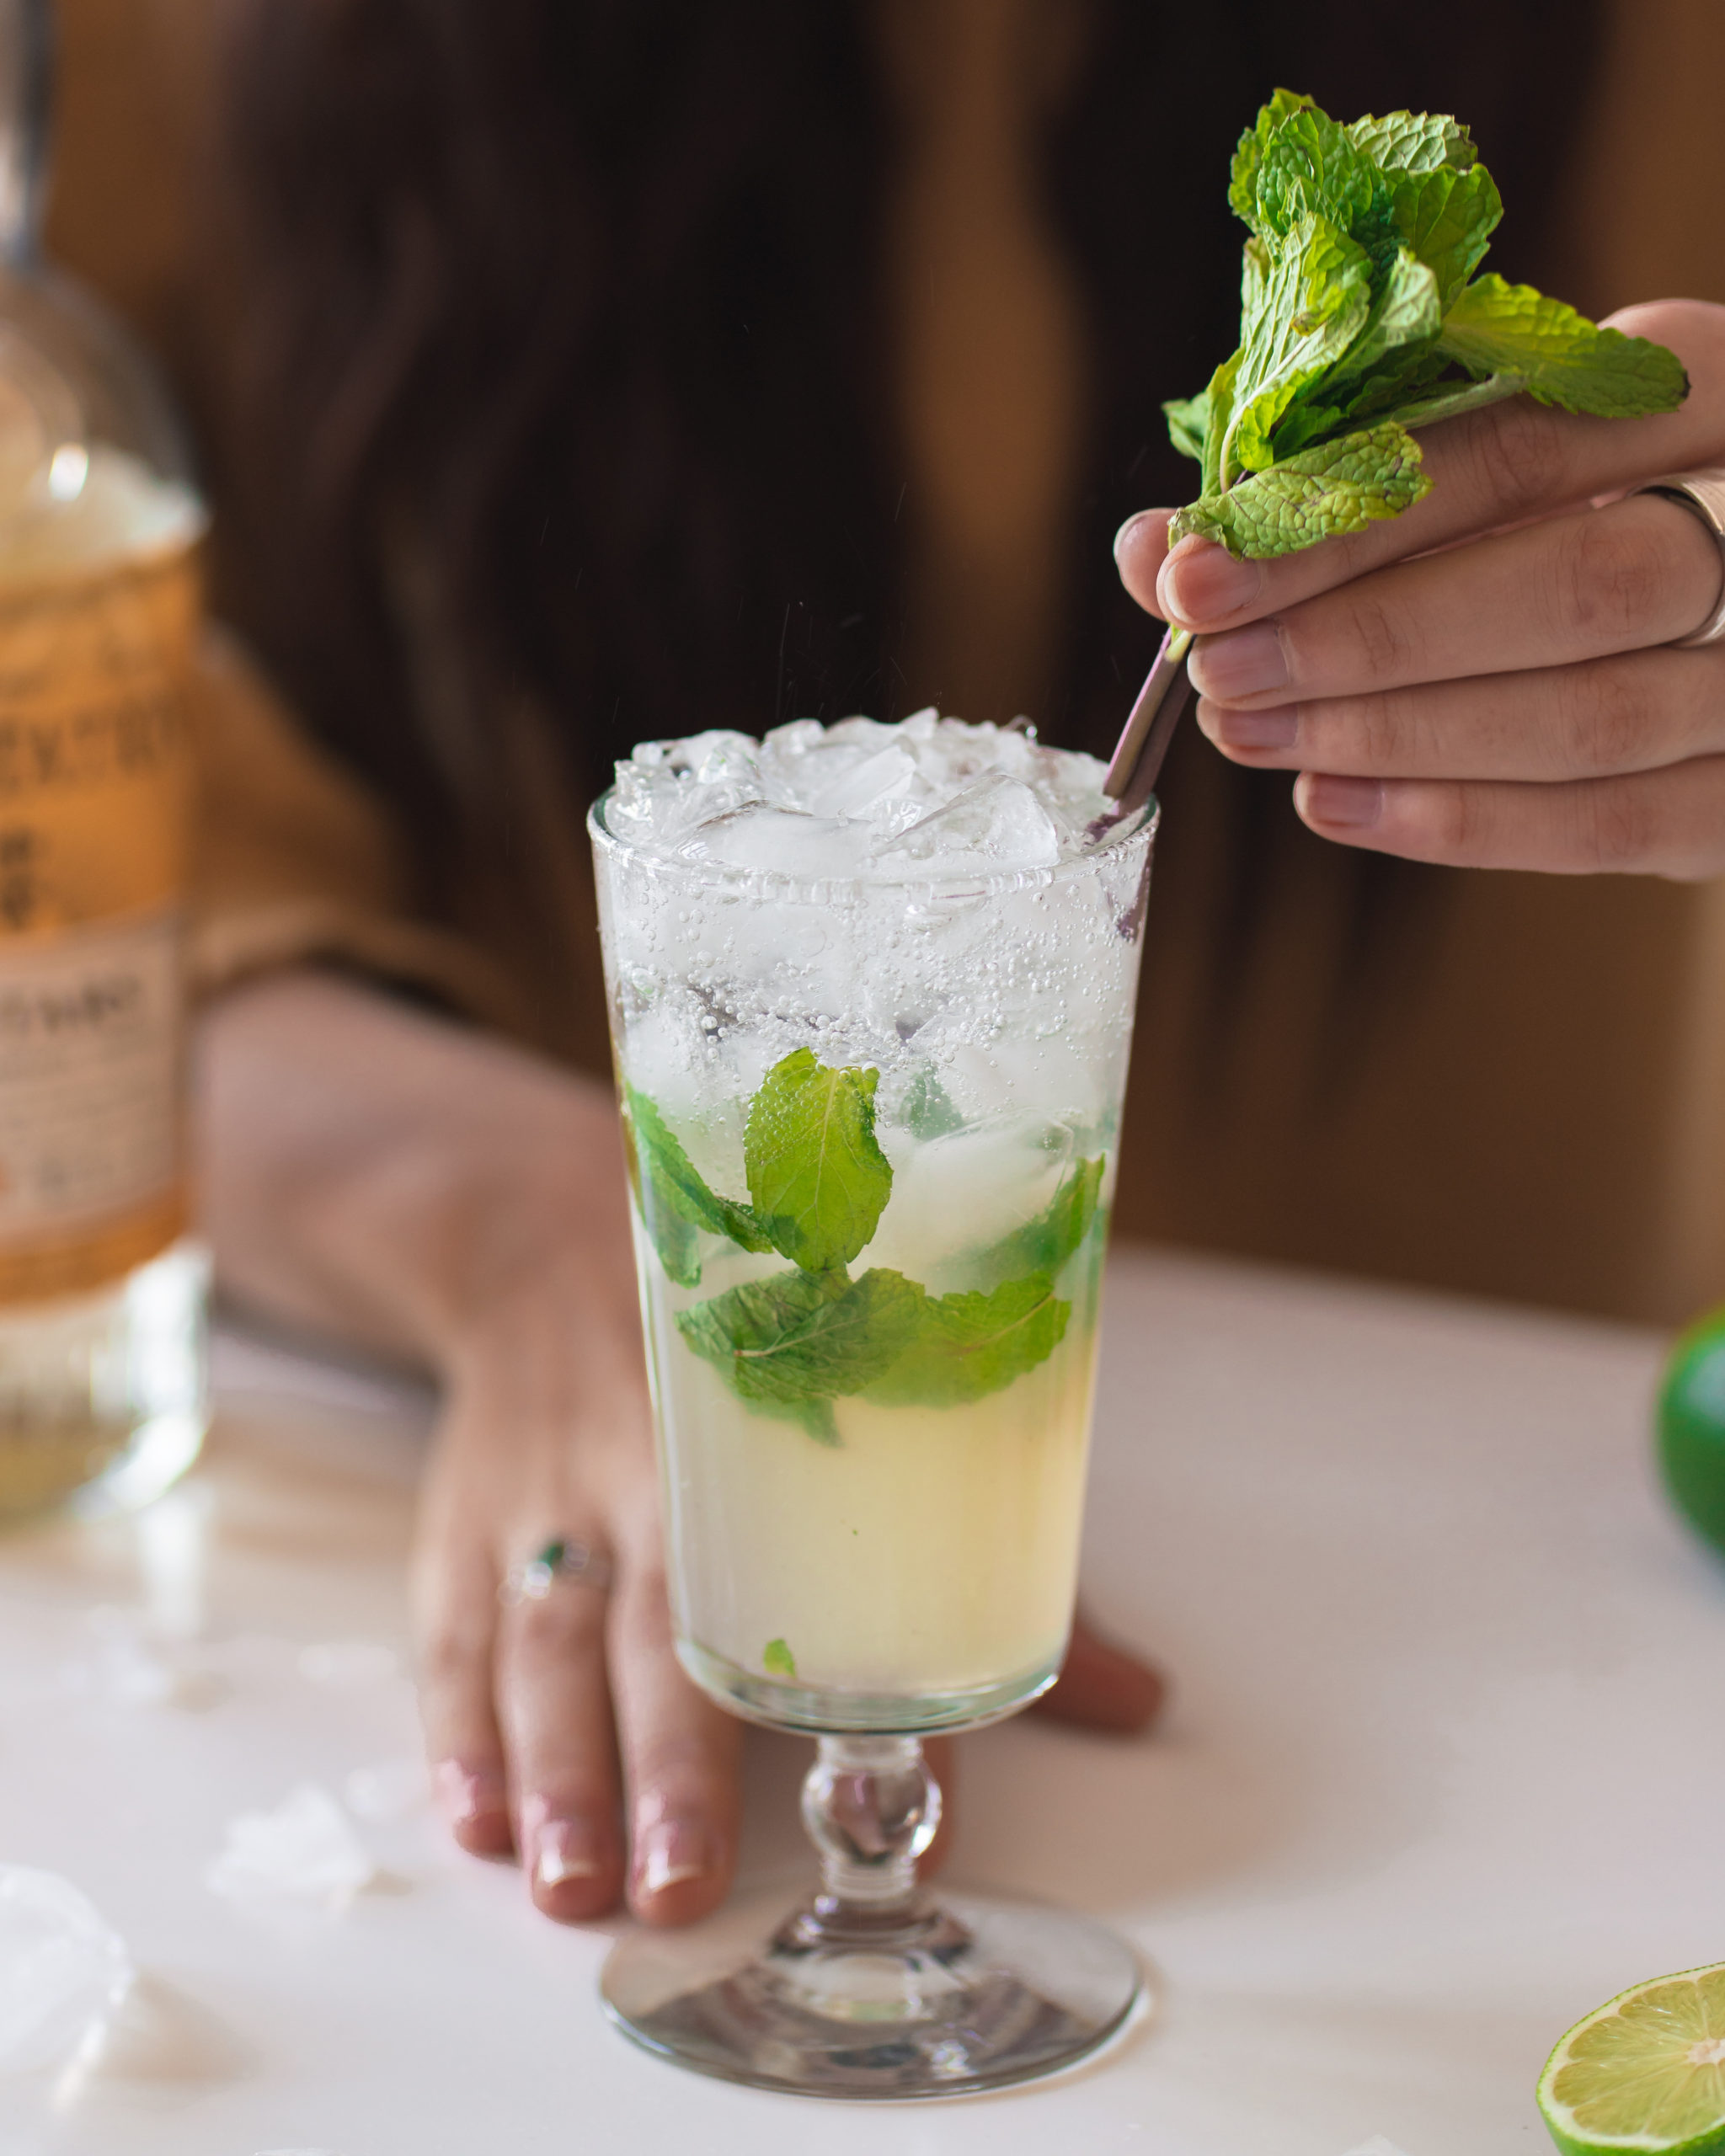 Garnihsing the finished mojito with a sprig of mint